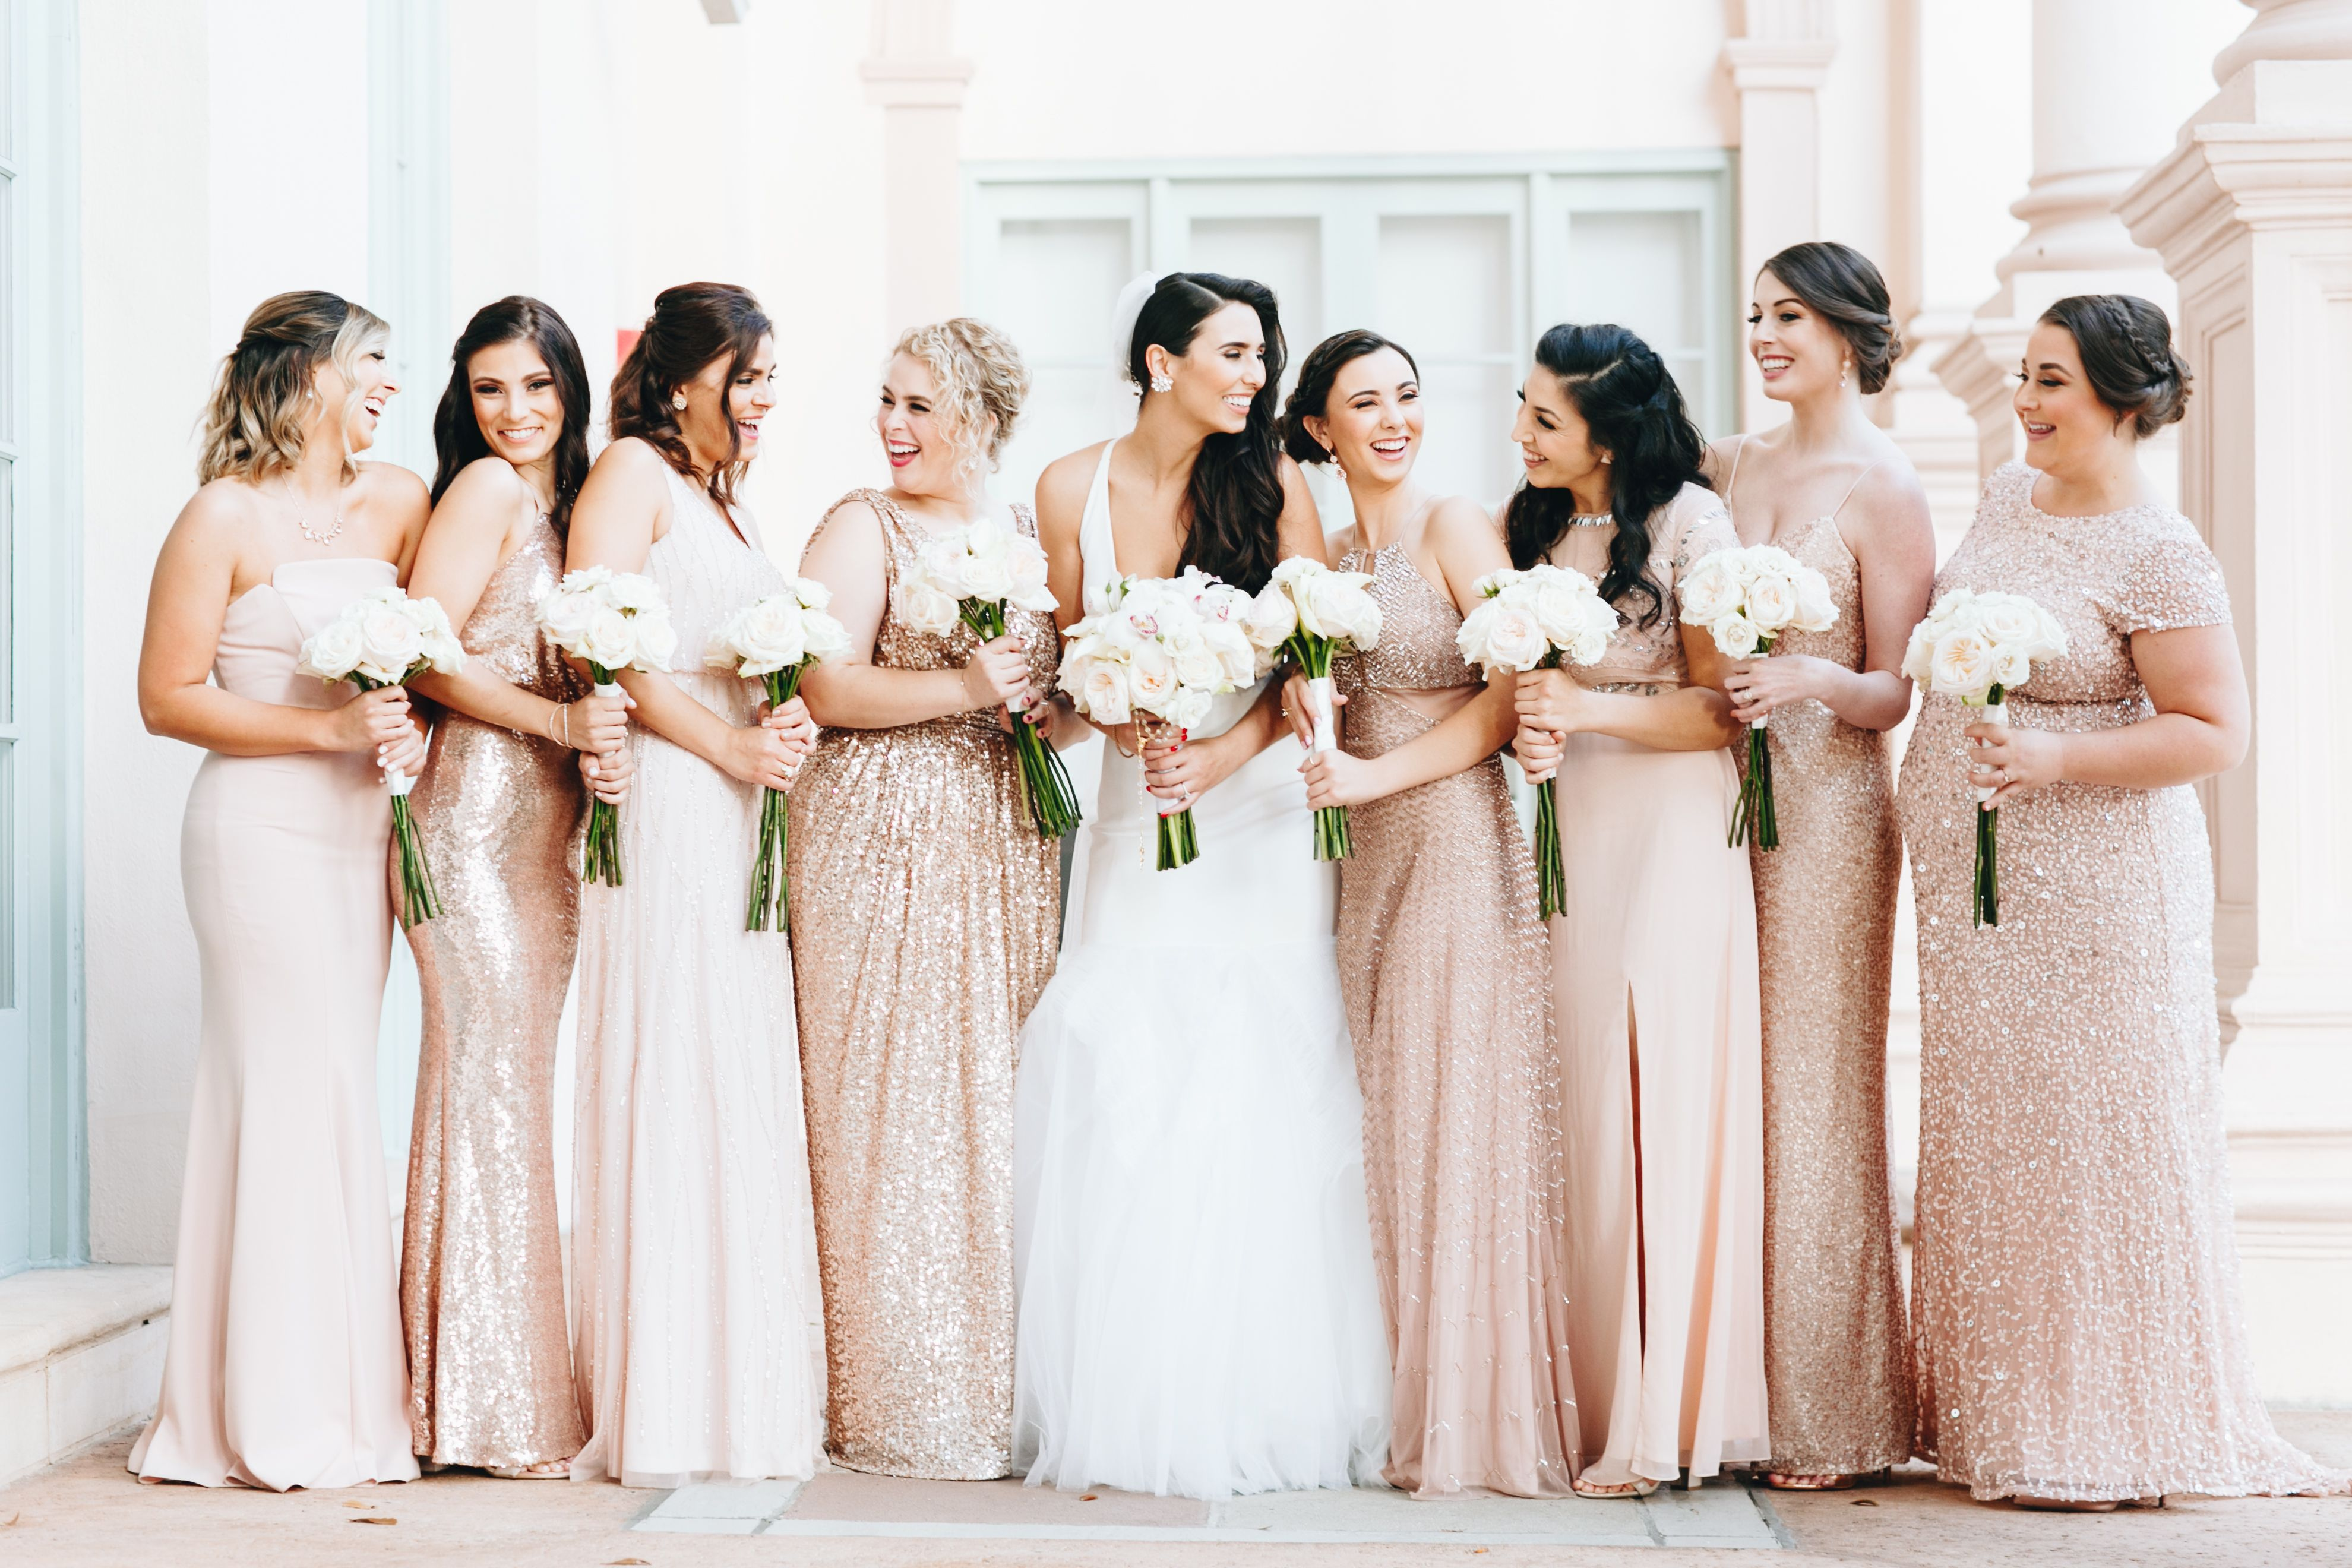 Our wedding day bridesmaid dresses miami wedding florida wedding vera wang bridal bisous brittany bisousbrittany ombrellifo Images